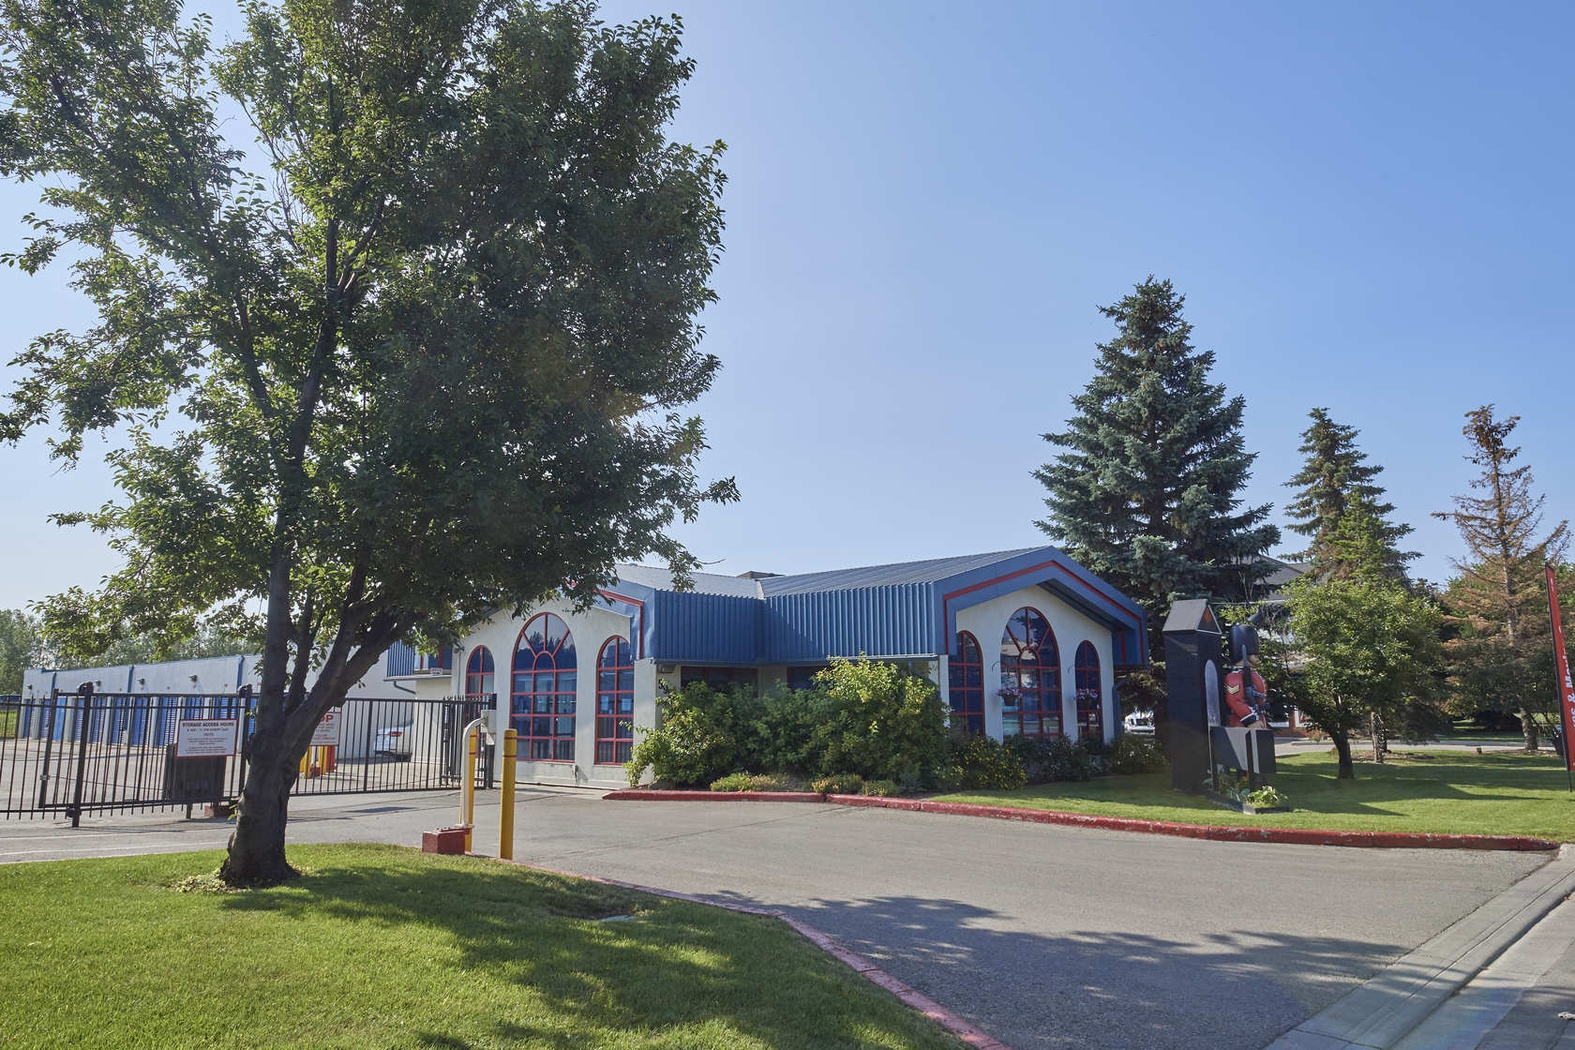 Rent Calgary storage units at 5950 12 St SE. We offer a wide-range of affordable self storage units and your first 4 weeks are free!